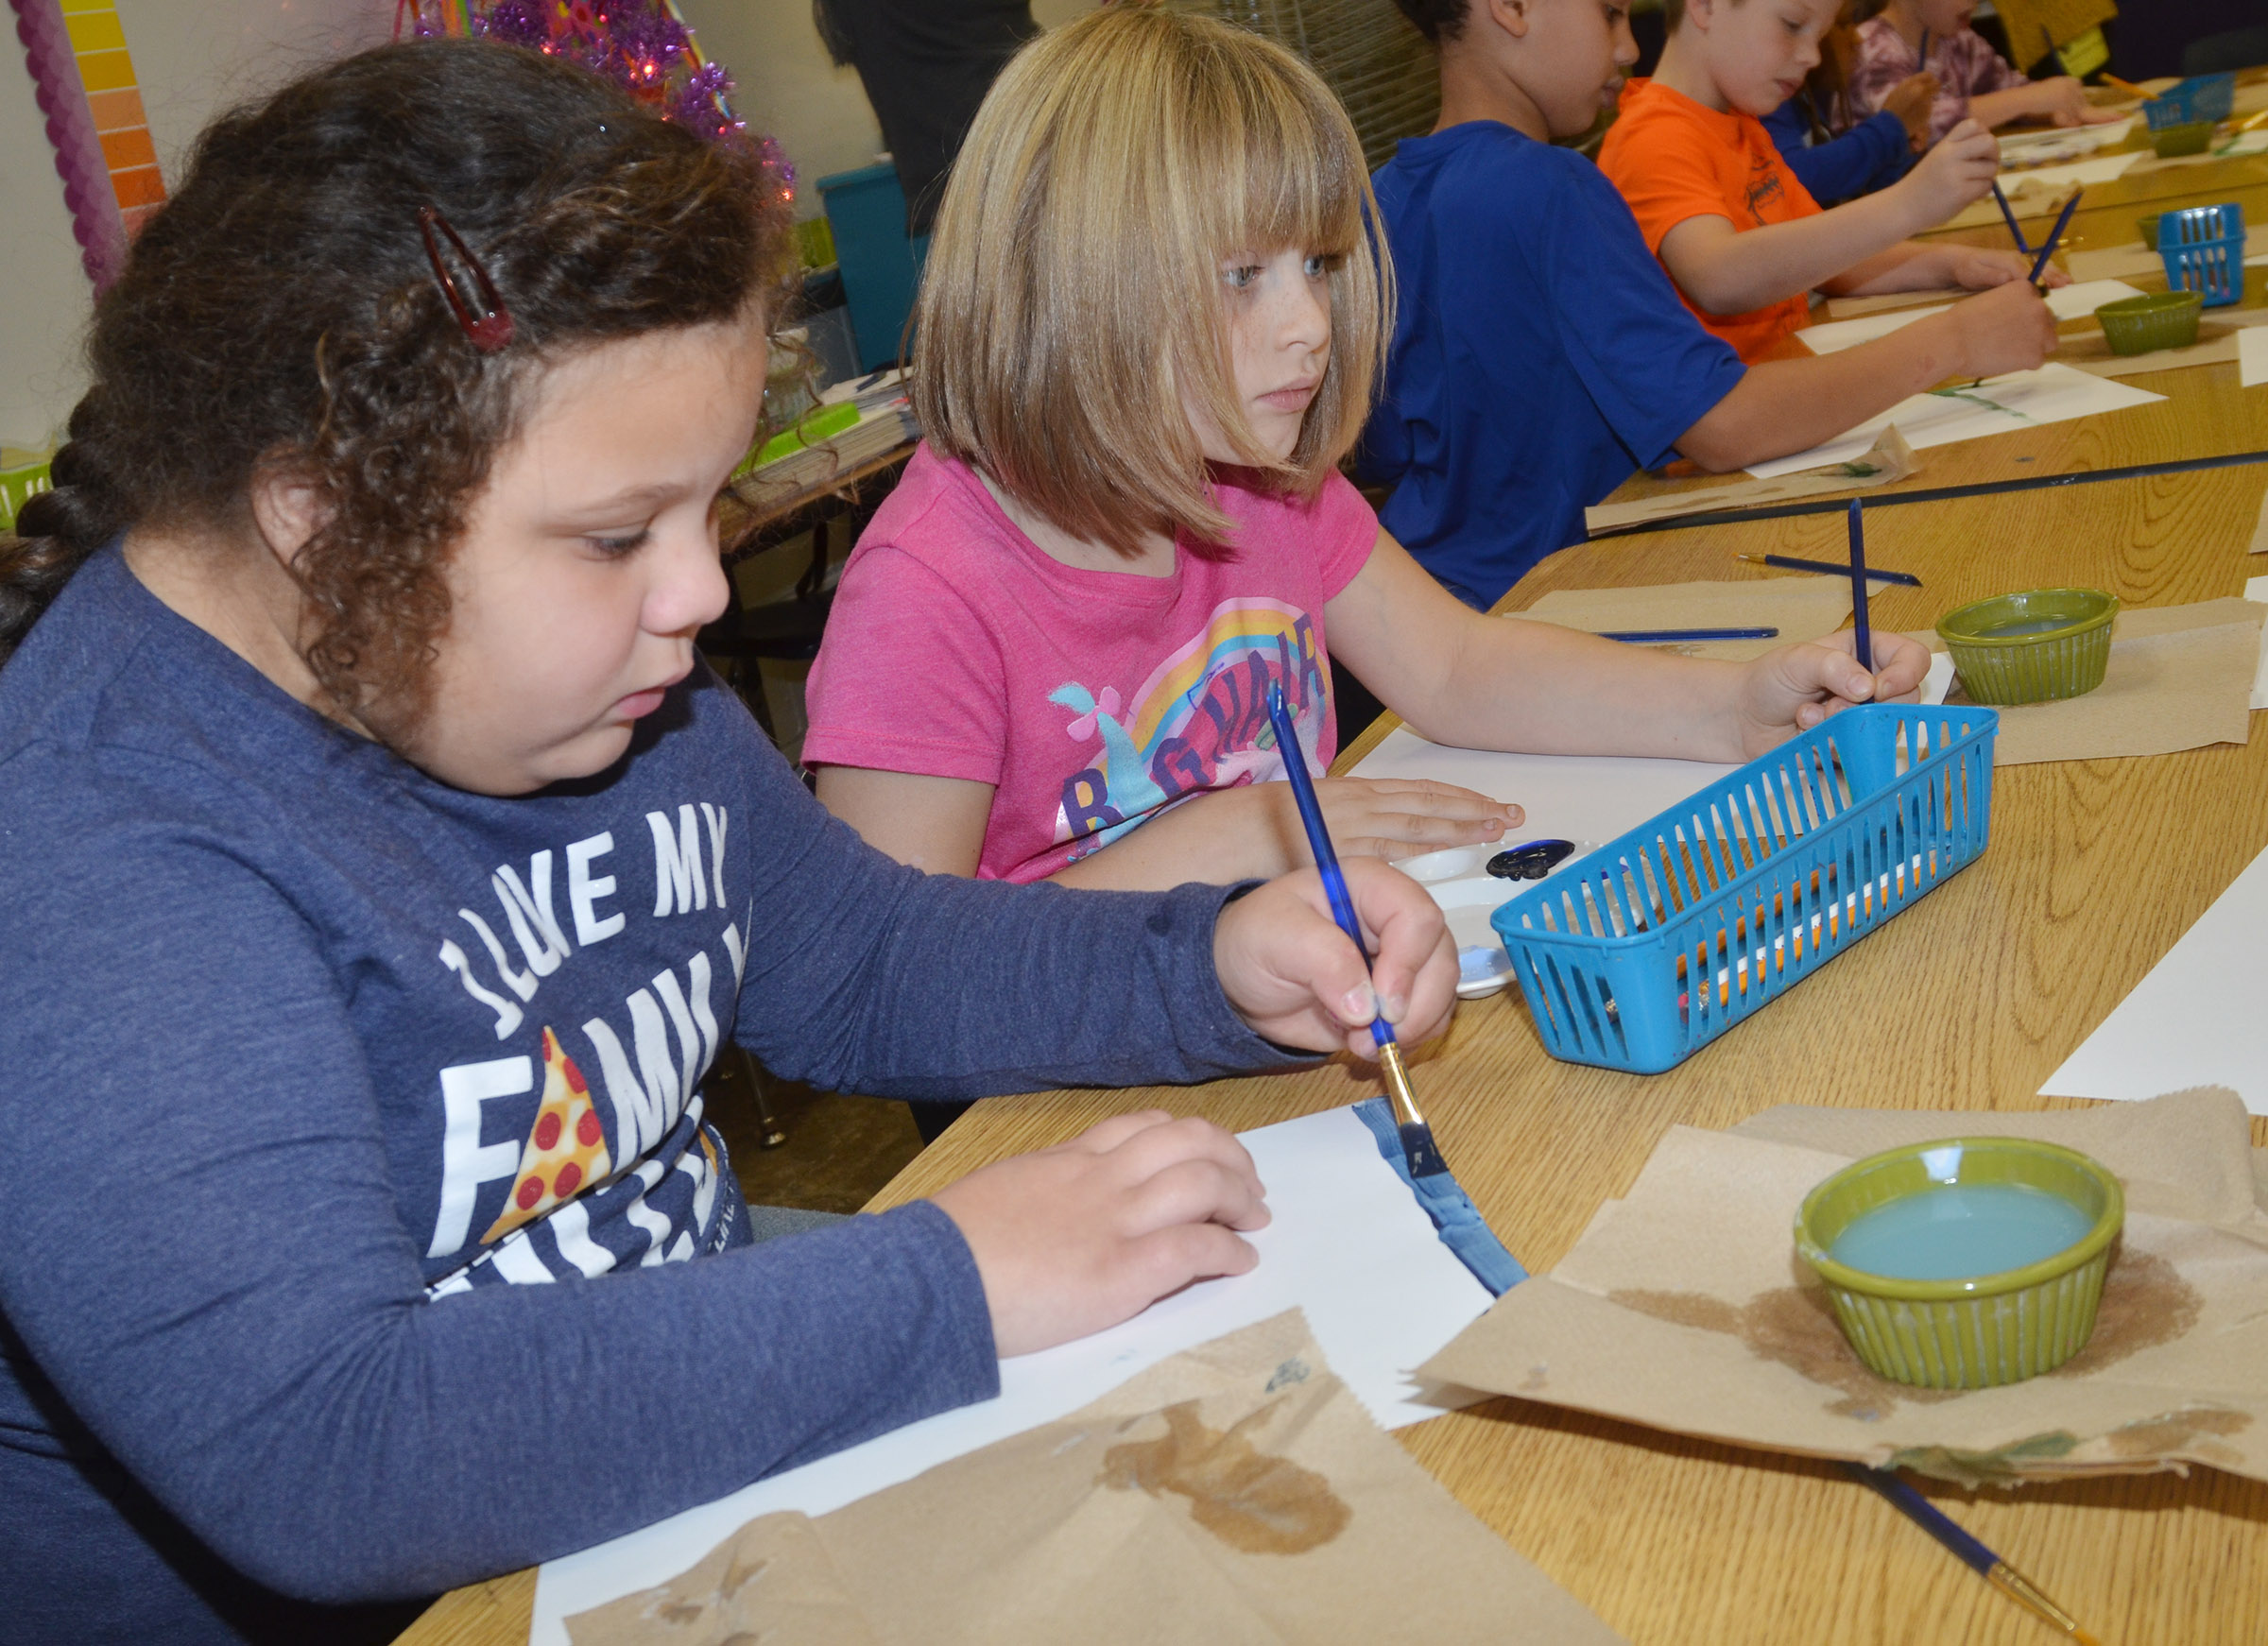 CES second-graders Amylah Taylor, at left, and Summer Daniels paint the sky in their winter scene.